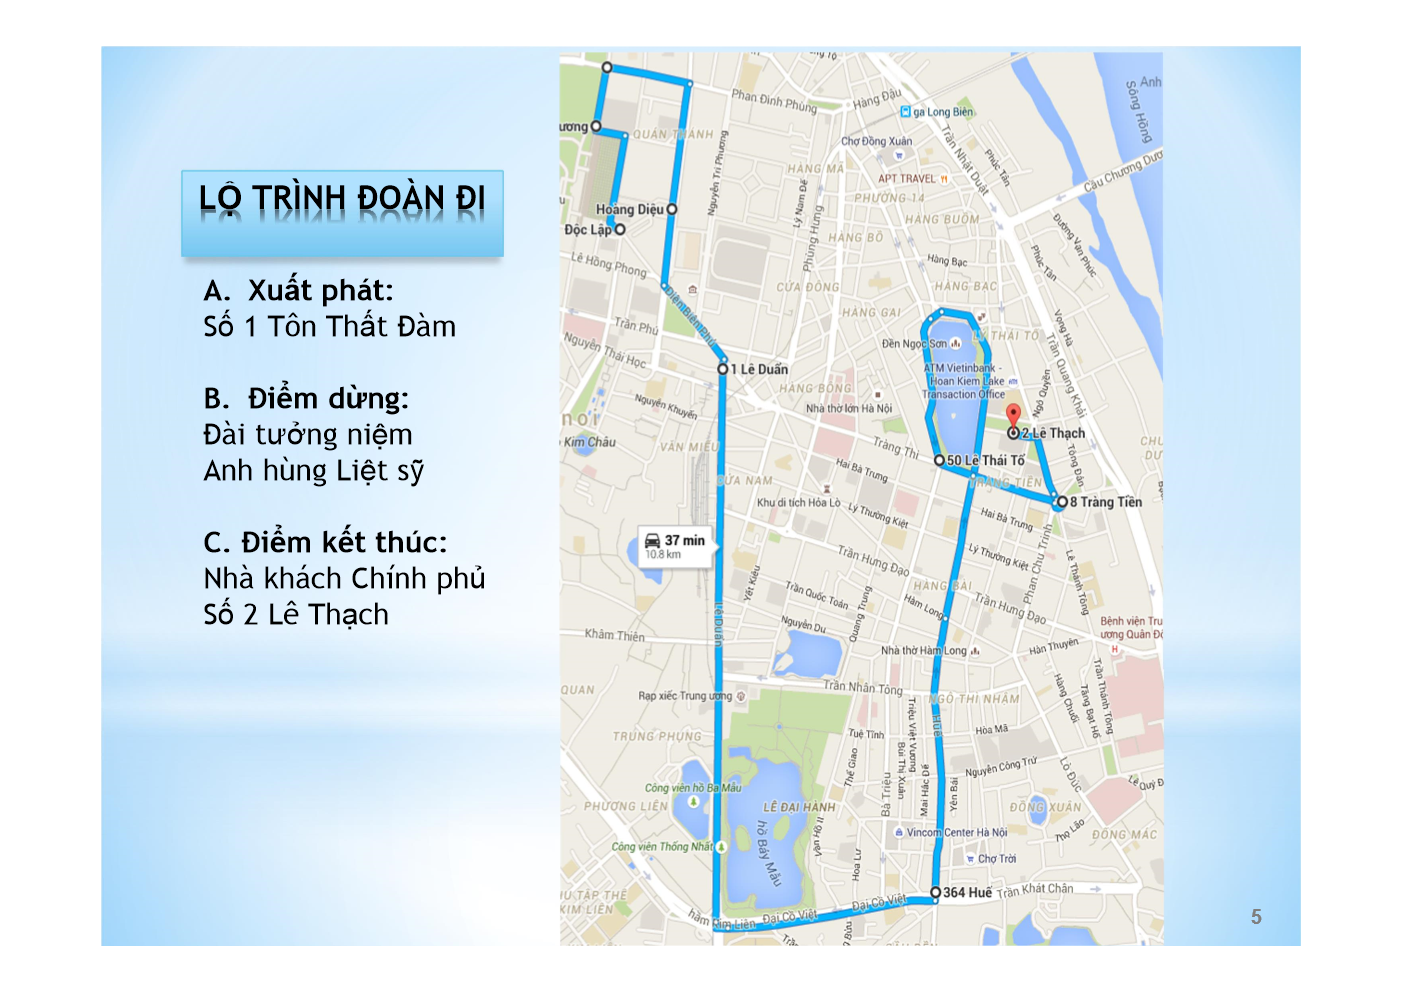 Cycling routine in celebration of 70th anniversary of Viet Nam's Ministry of Foreign Affairs